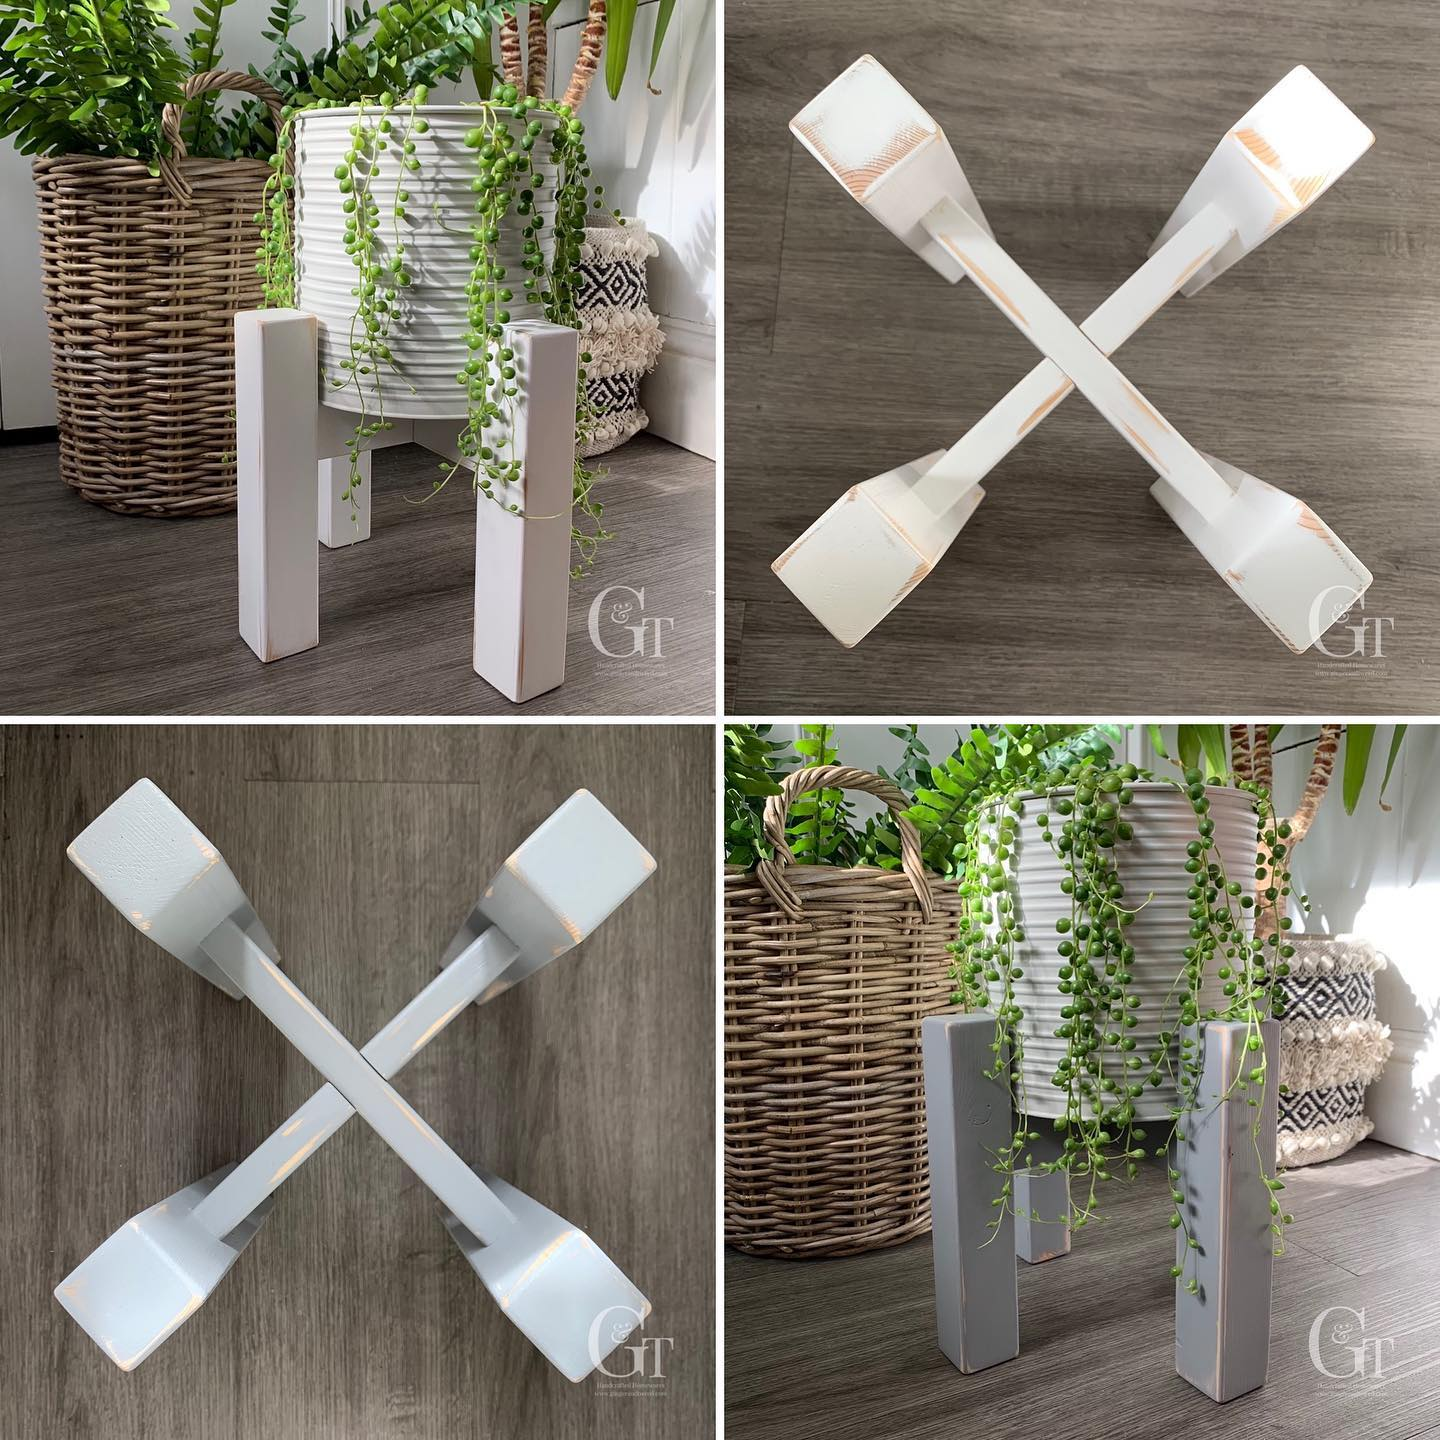 Now available in white and grey!£16 plus postage. ..#indoorplant #plantstand #bringtheoutsidein #homedecor #greenfingers #handcrafted #home #gingerandtweed #gardeninspiration #houseplant #newproduct